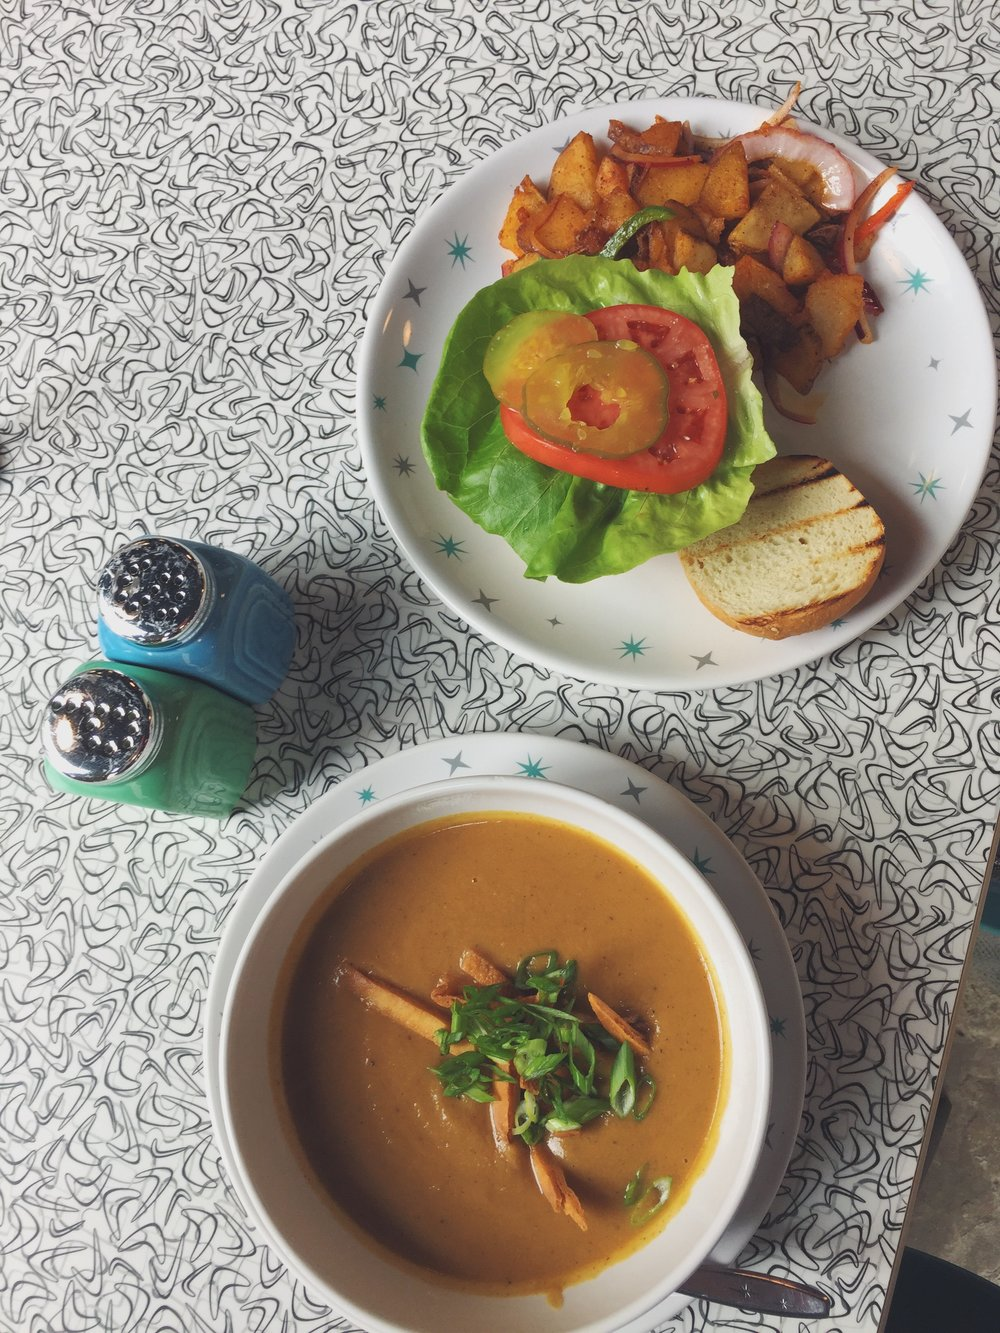 Cauliflower Curry Soup and A Veggie Burger with Hashbrowns